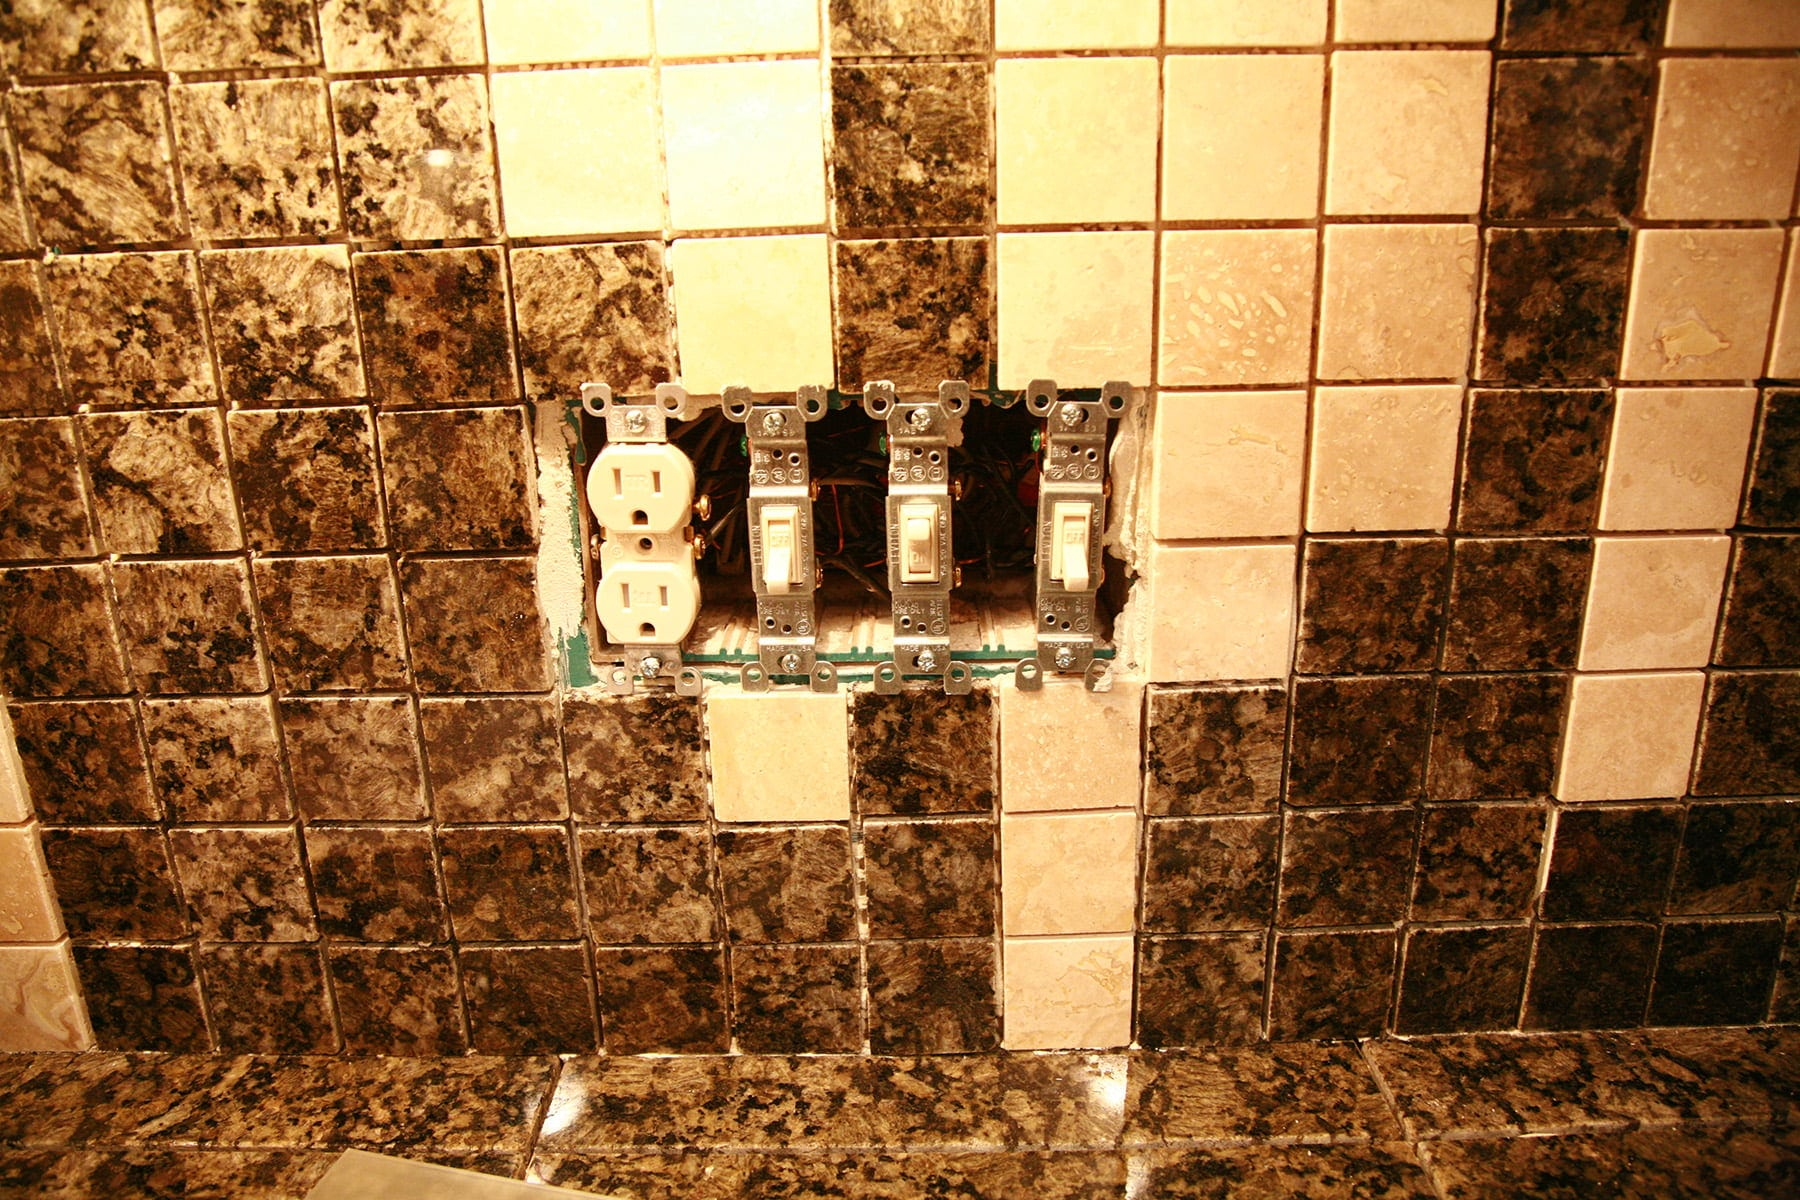 A exposed light switch panel is surrounded by green and white squares of granite tile.